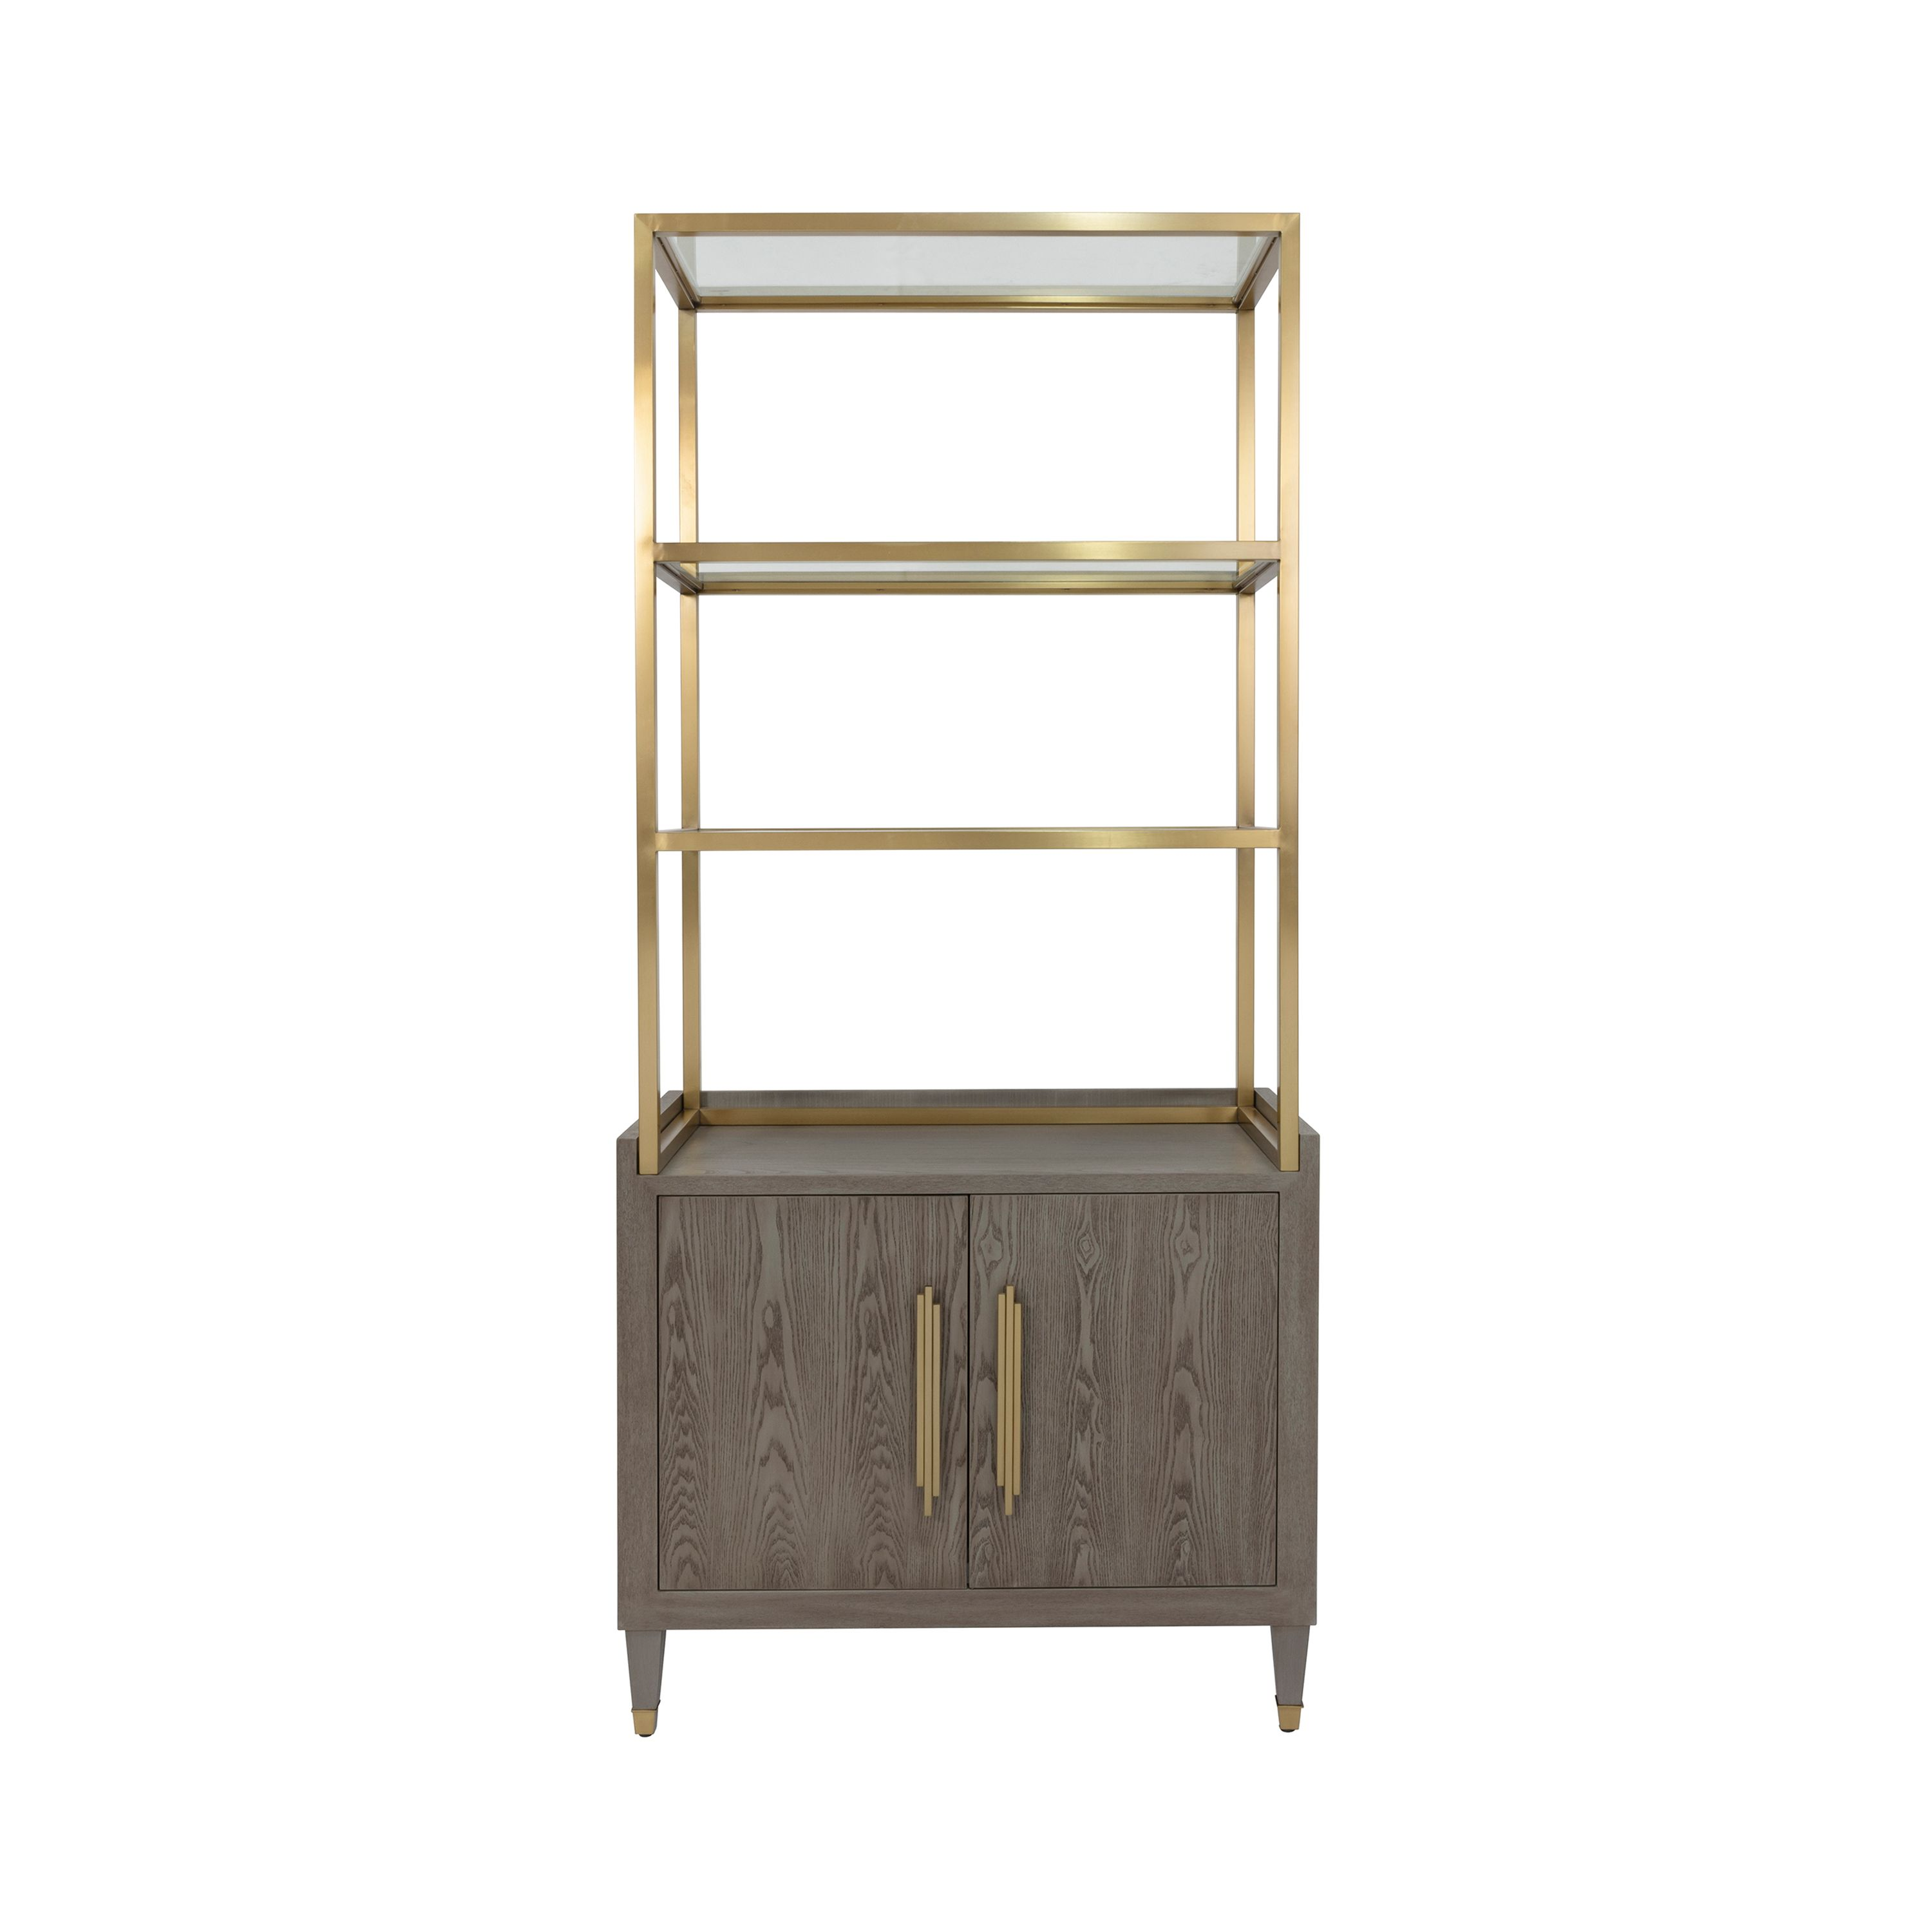 Smoke Grey Etagere with Brushed Brass Frame & Glass Shelves